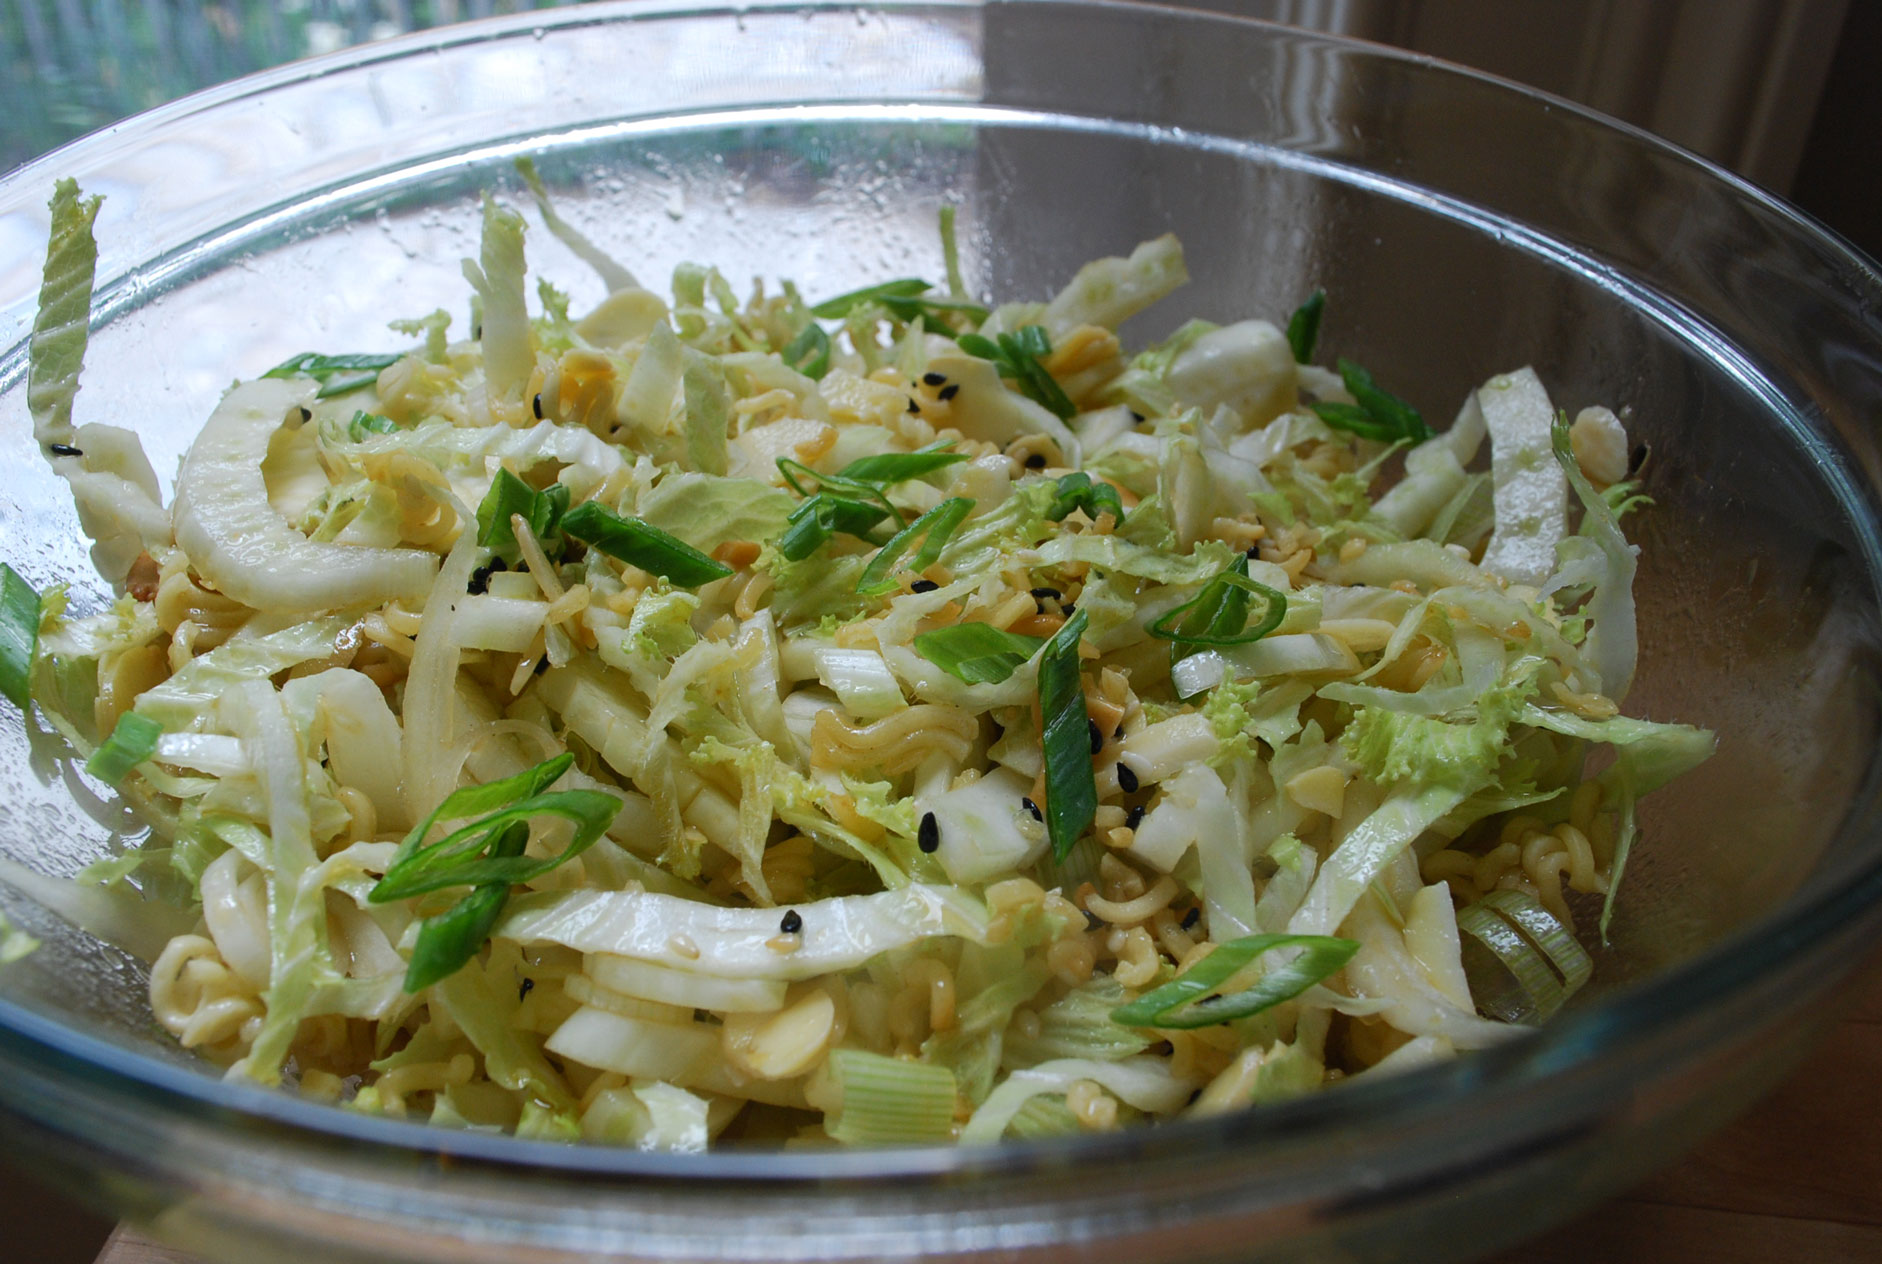 Asian cabbage salad with ramen noodles